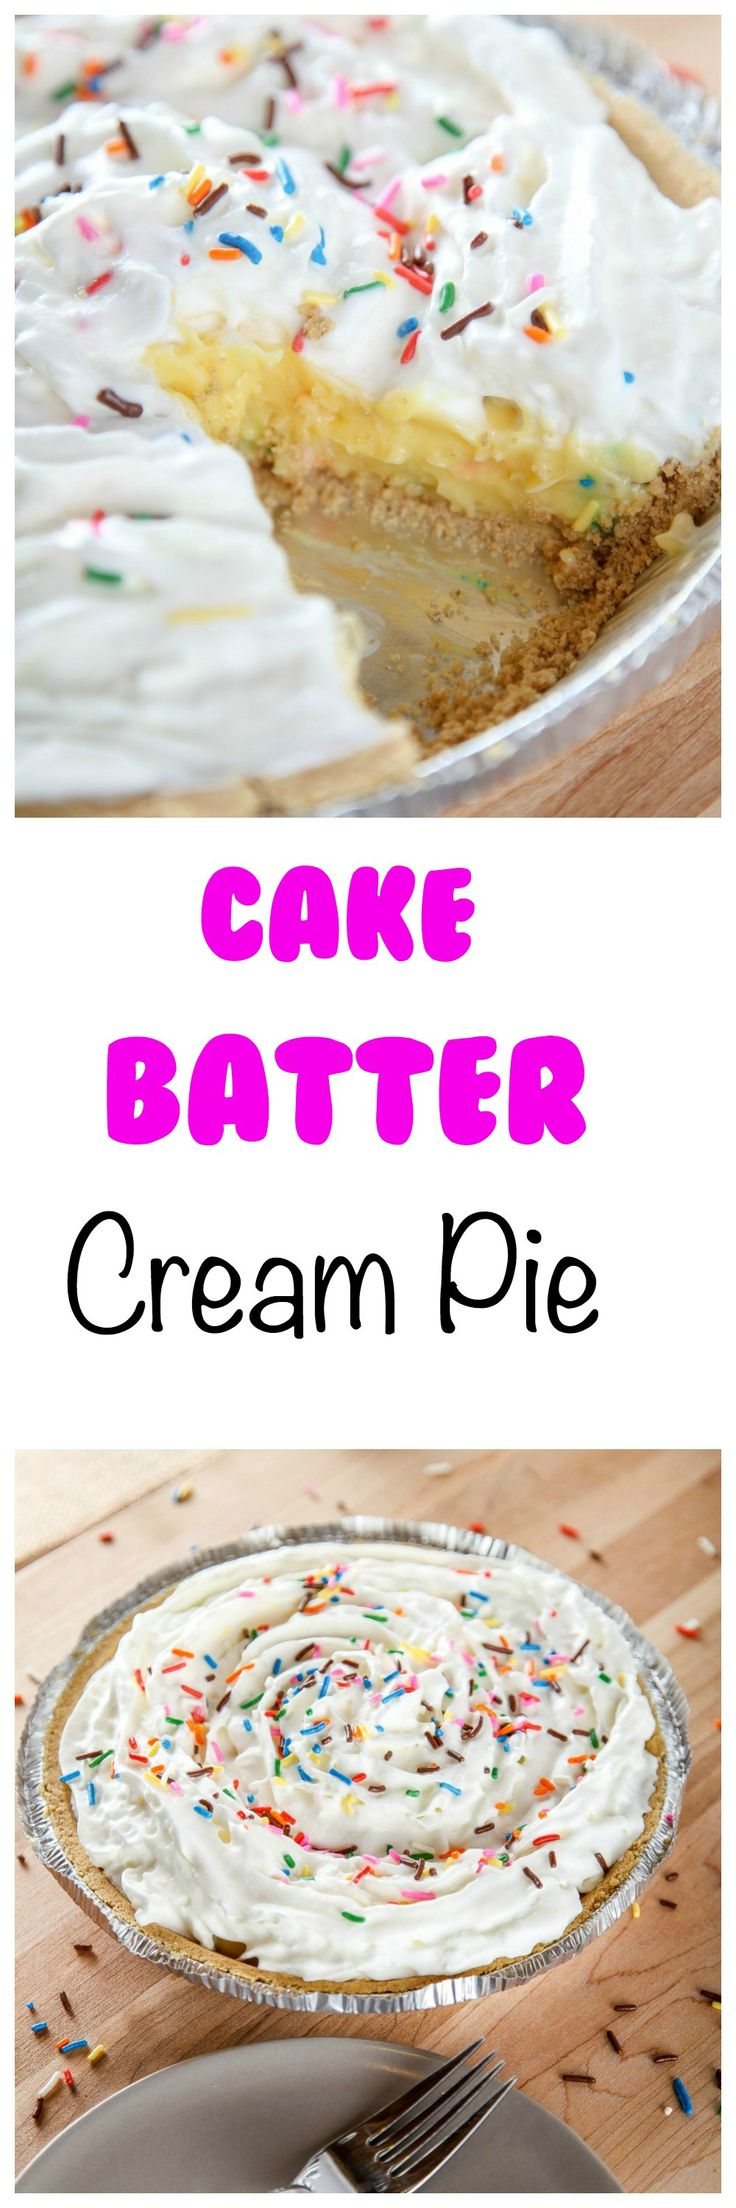 Cake Batter Cream Pie: Rich and creamy filling that tastes just like cake batter inside a graham cracker crust. Finally you can have your cake and eat pie too!